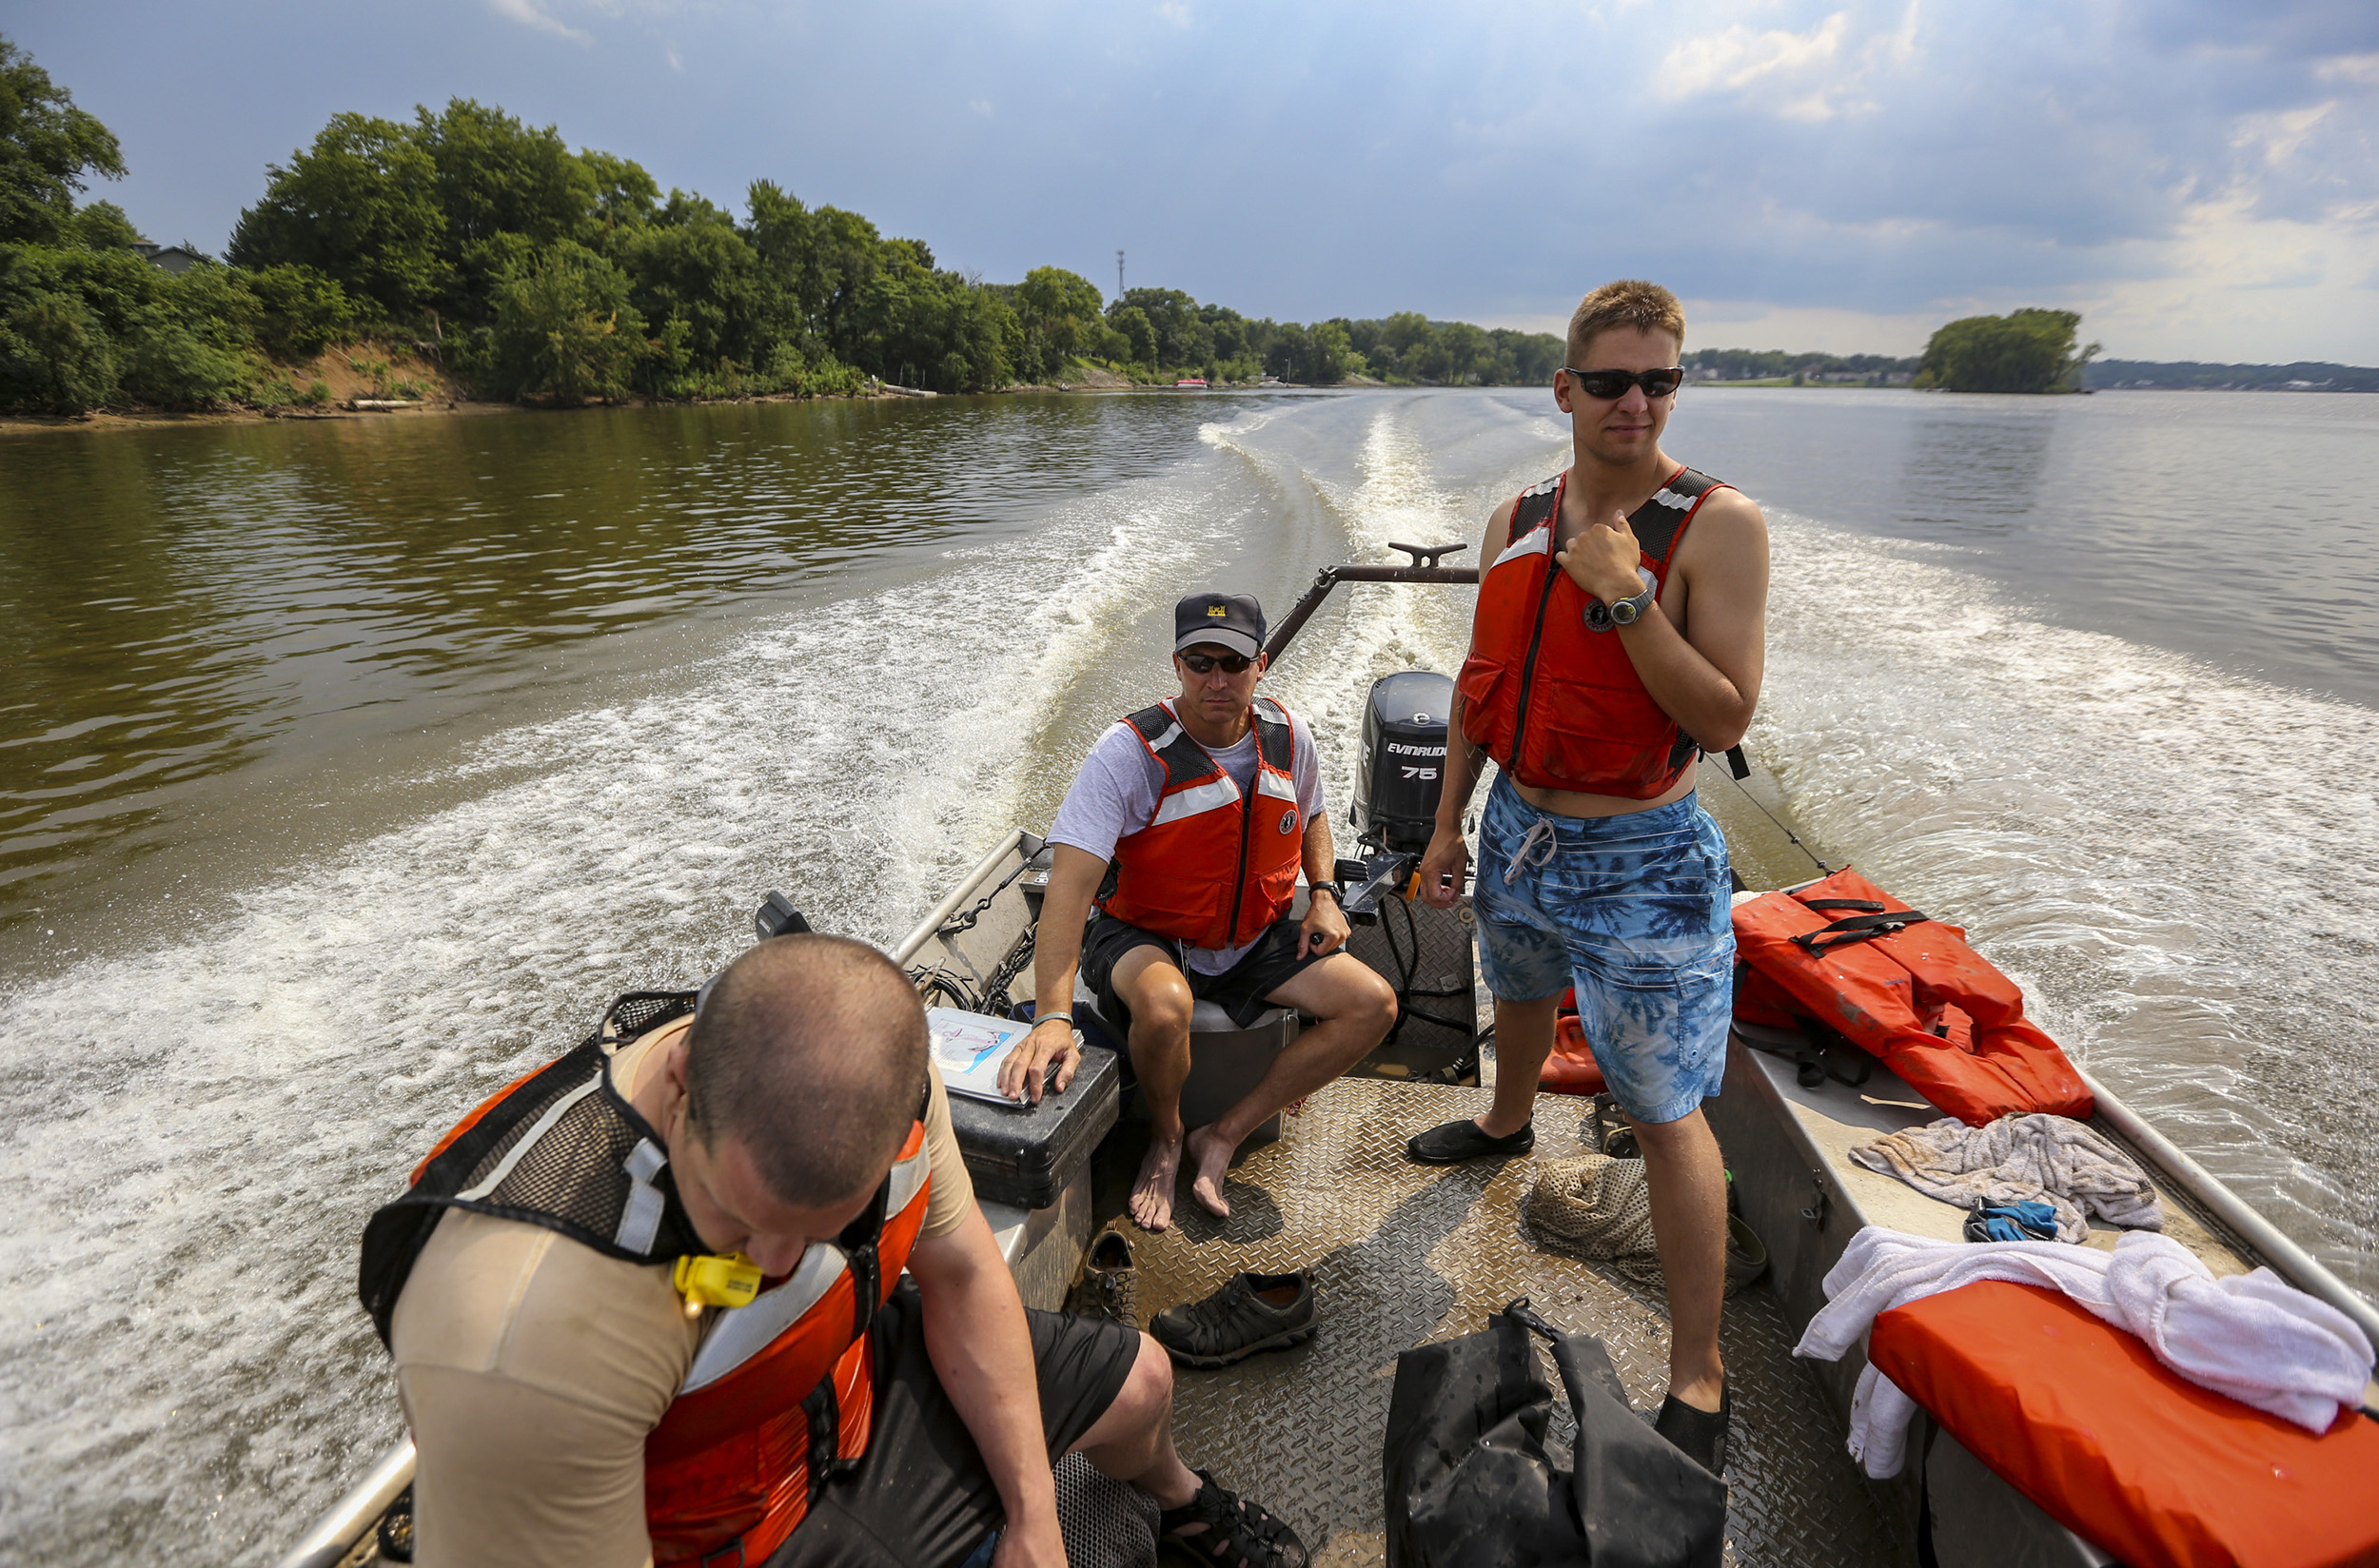 St. Paul District Army Corp of Engineers biologist Dan Kelner drives the boat as St. Paul District Army Corps of Engineers Fisheries biologist Trevor Cyphers, right, and Rock Island district biologist Kjetil Henderson prepare to relocate counted mussels as a part of a survey in the Mississippi River in Cordova, Illinois, Wednesday, August 2, 2017. On the first Wednesday of August each year, around 70 workers get together representing 11 different corporations, universities and other agencies to check the status of endangered mussel species. Information about the trends of the mussels can be used to infer trends of the river. Due to mussel diversity in the area, Cordova offers a rare sampling proving valuable for research.